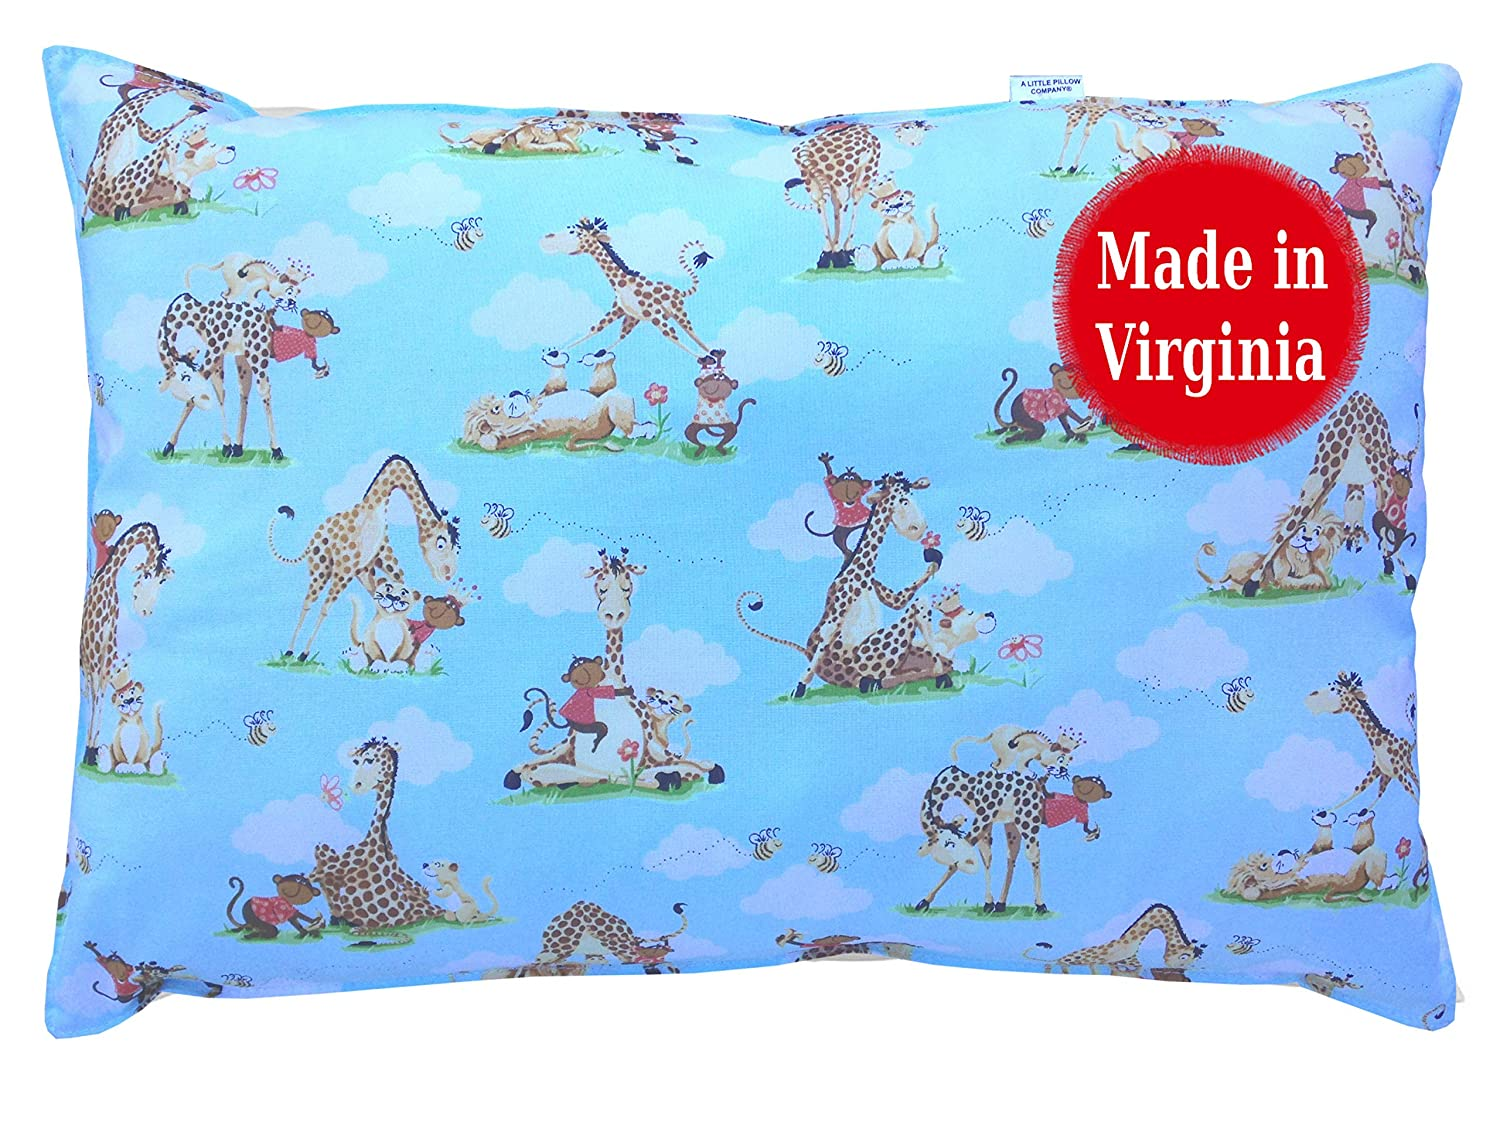 Toddler Pillow (Sheep) - 13 x 18 - Double Stitched - Machine Washable - Hypoallergenic - Made in Virginia by A Little Pillow Company TP-SHEEP